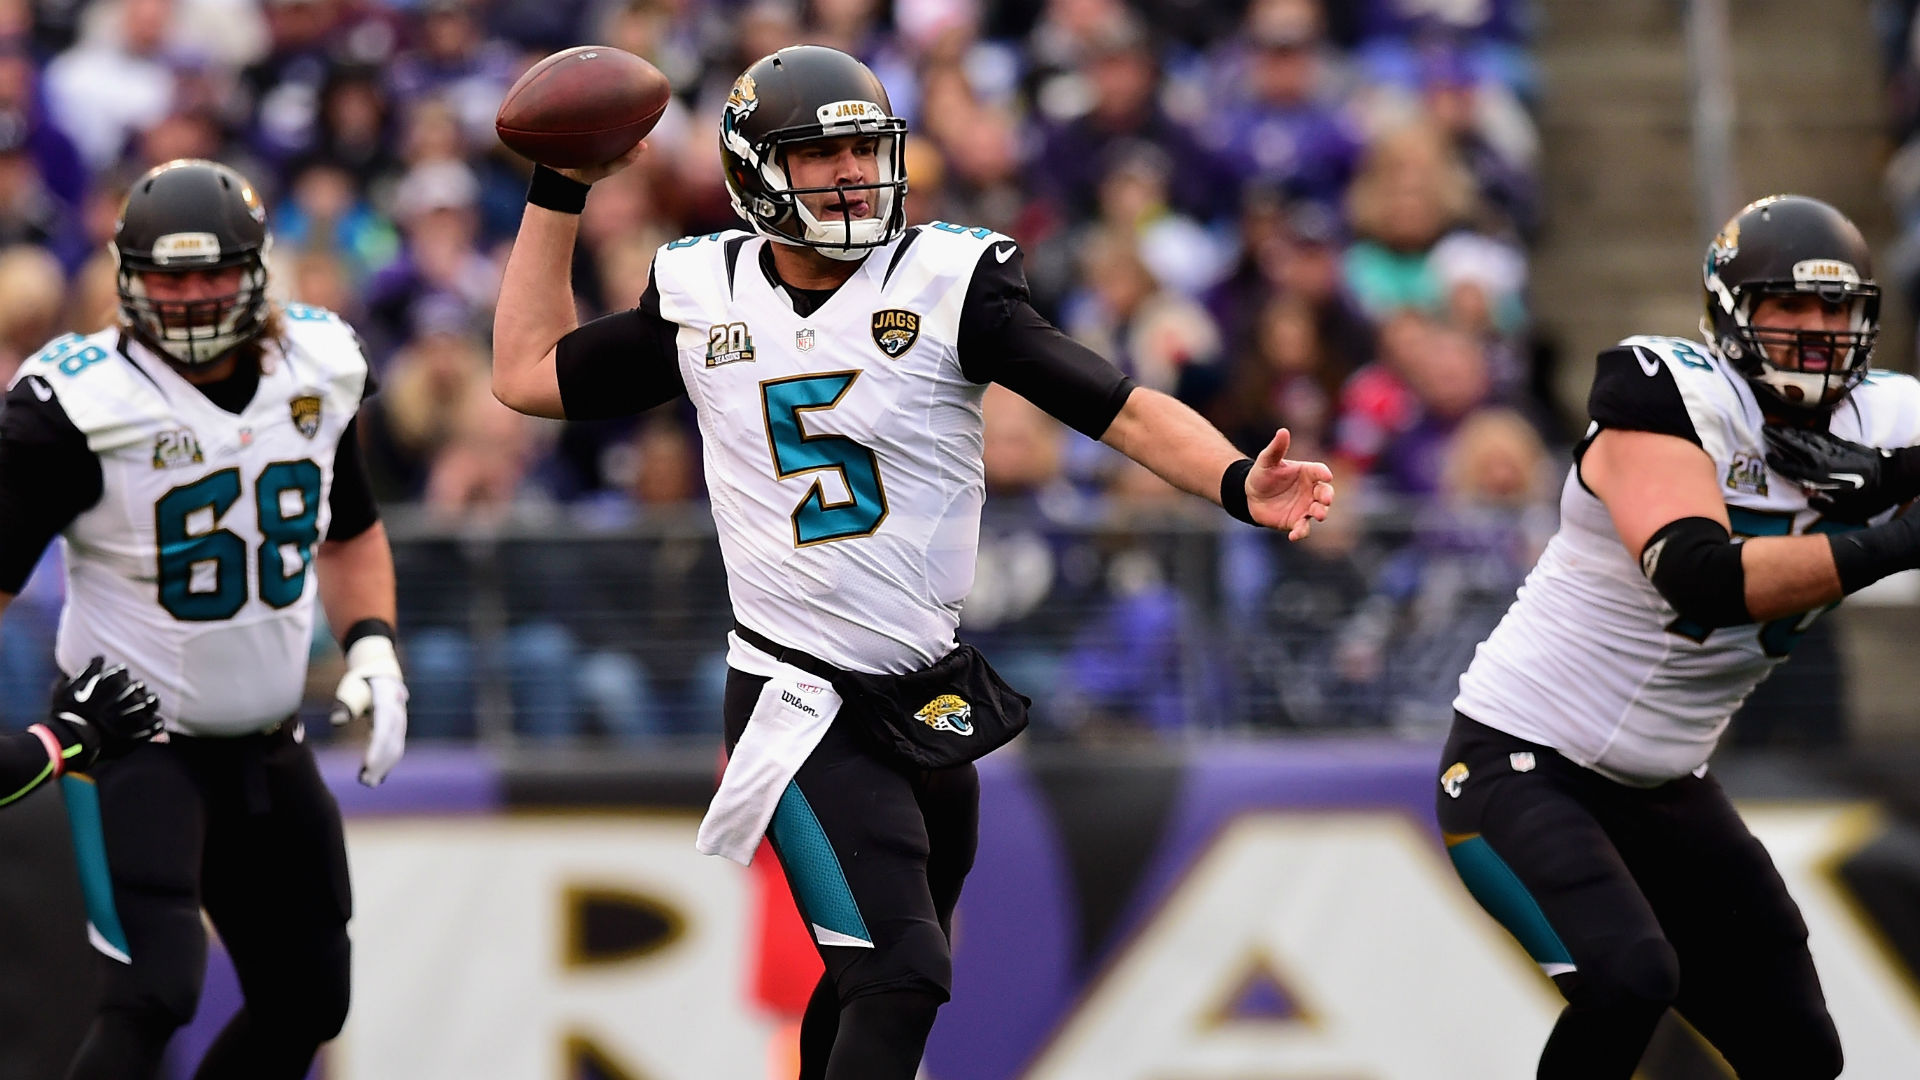 Blake-Bortles-121714-Getty-FTR.jpg